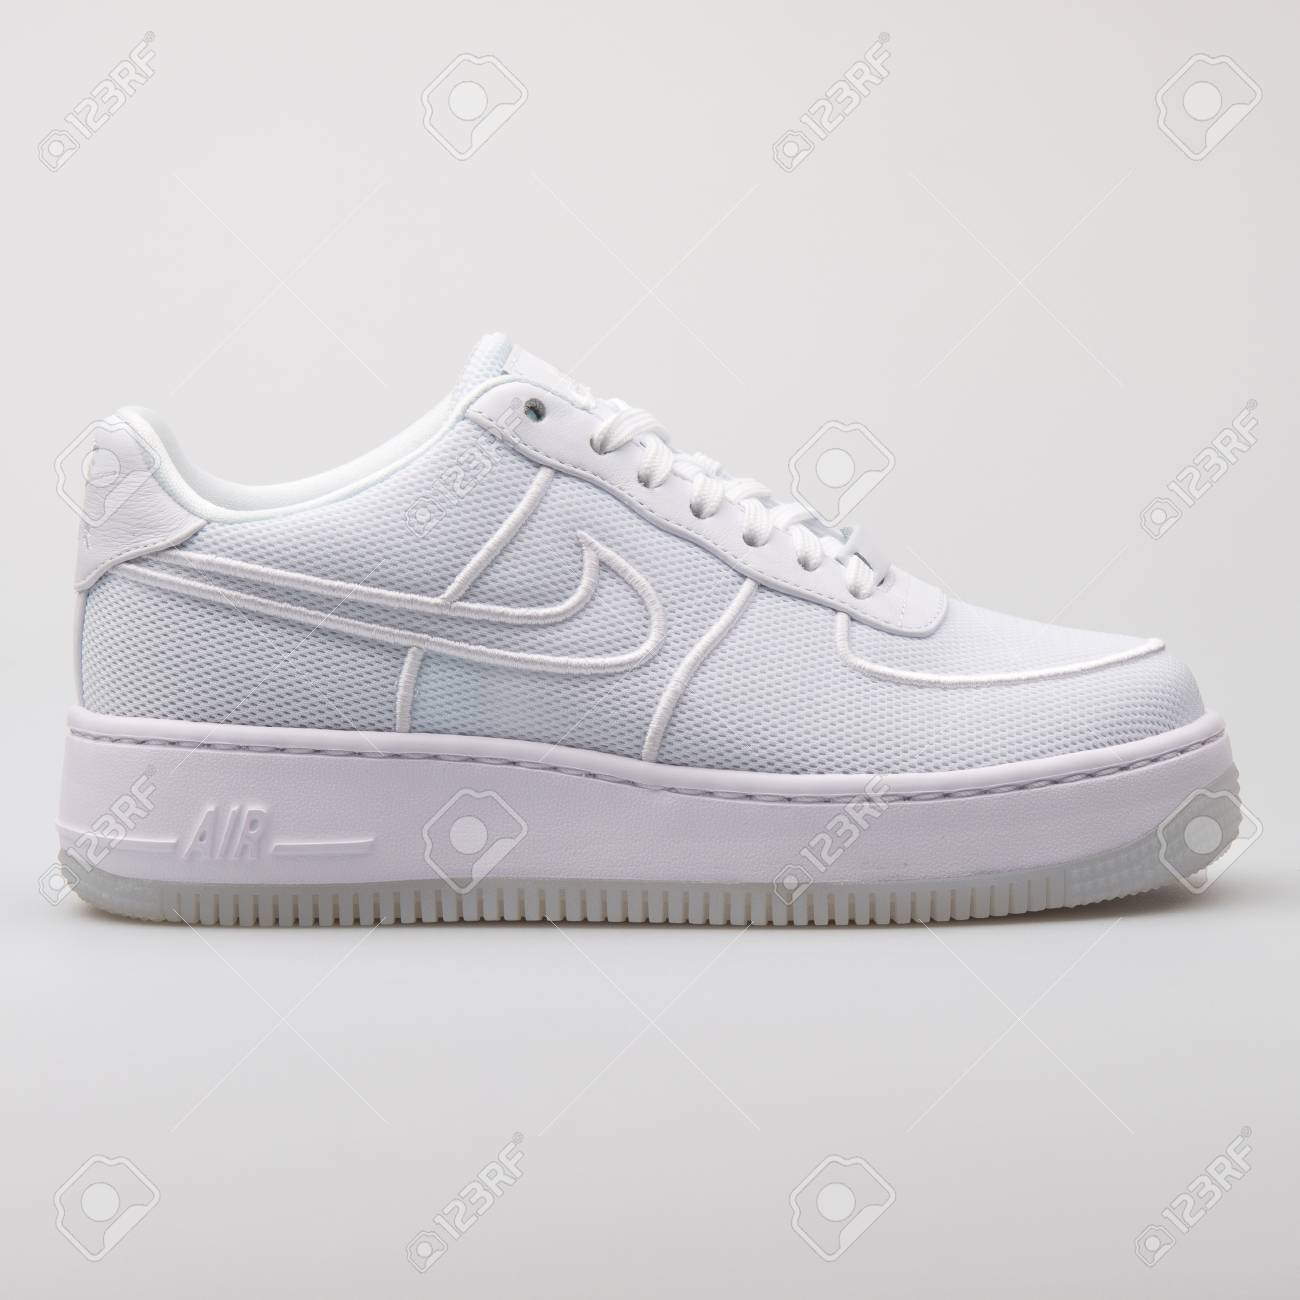 wholesale dealer f0d1a 509e2 VIENNA, AUSTRIA - AUGUST 7, 2017: Nike Air Force 1 Low Upstep..